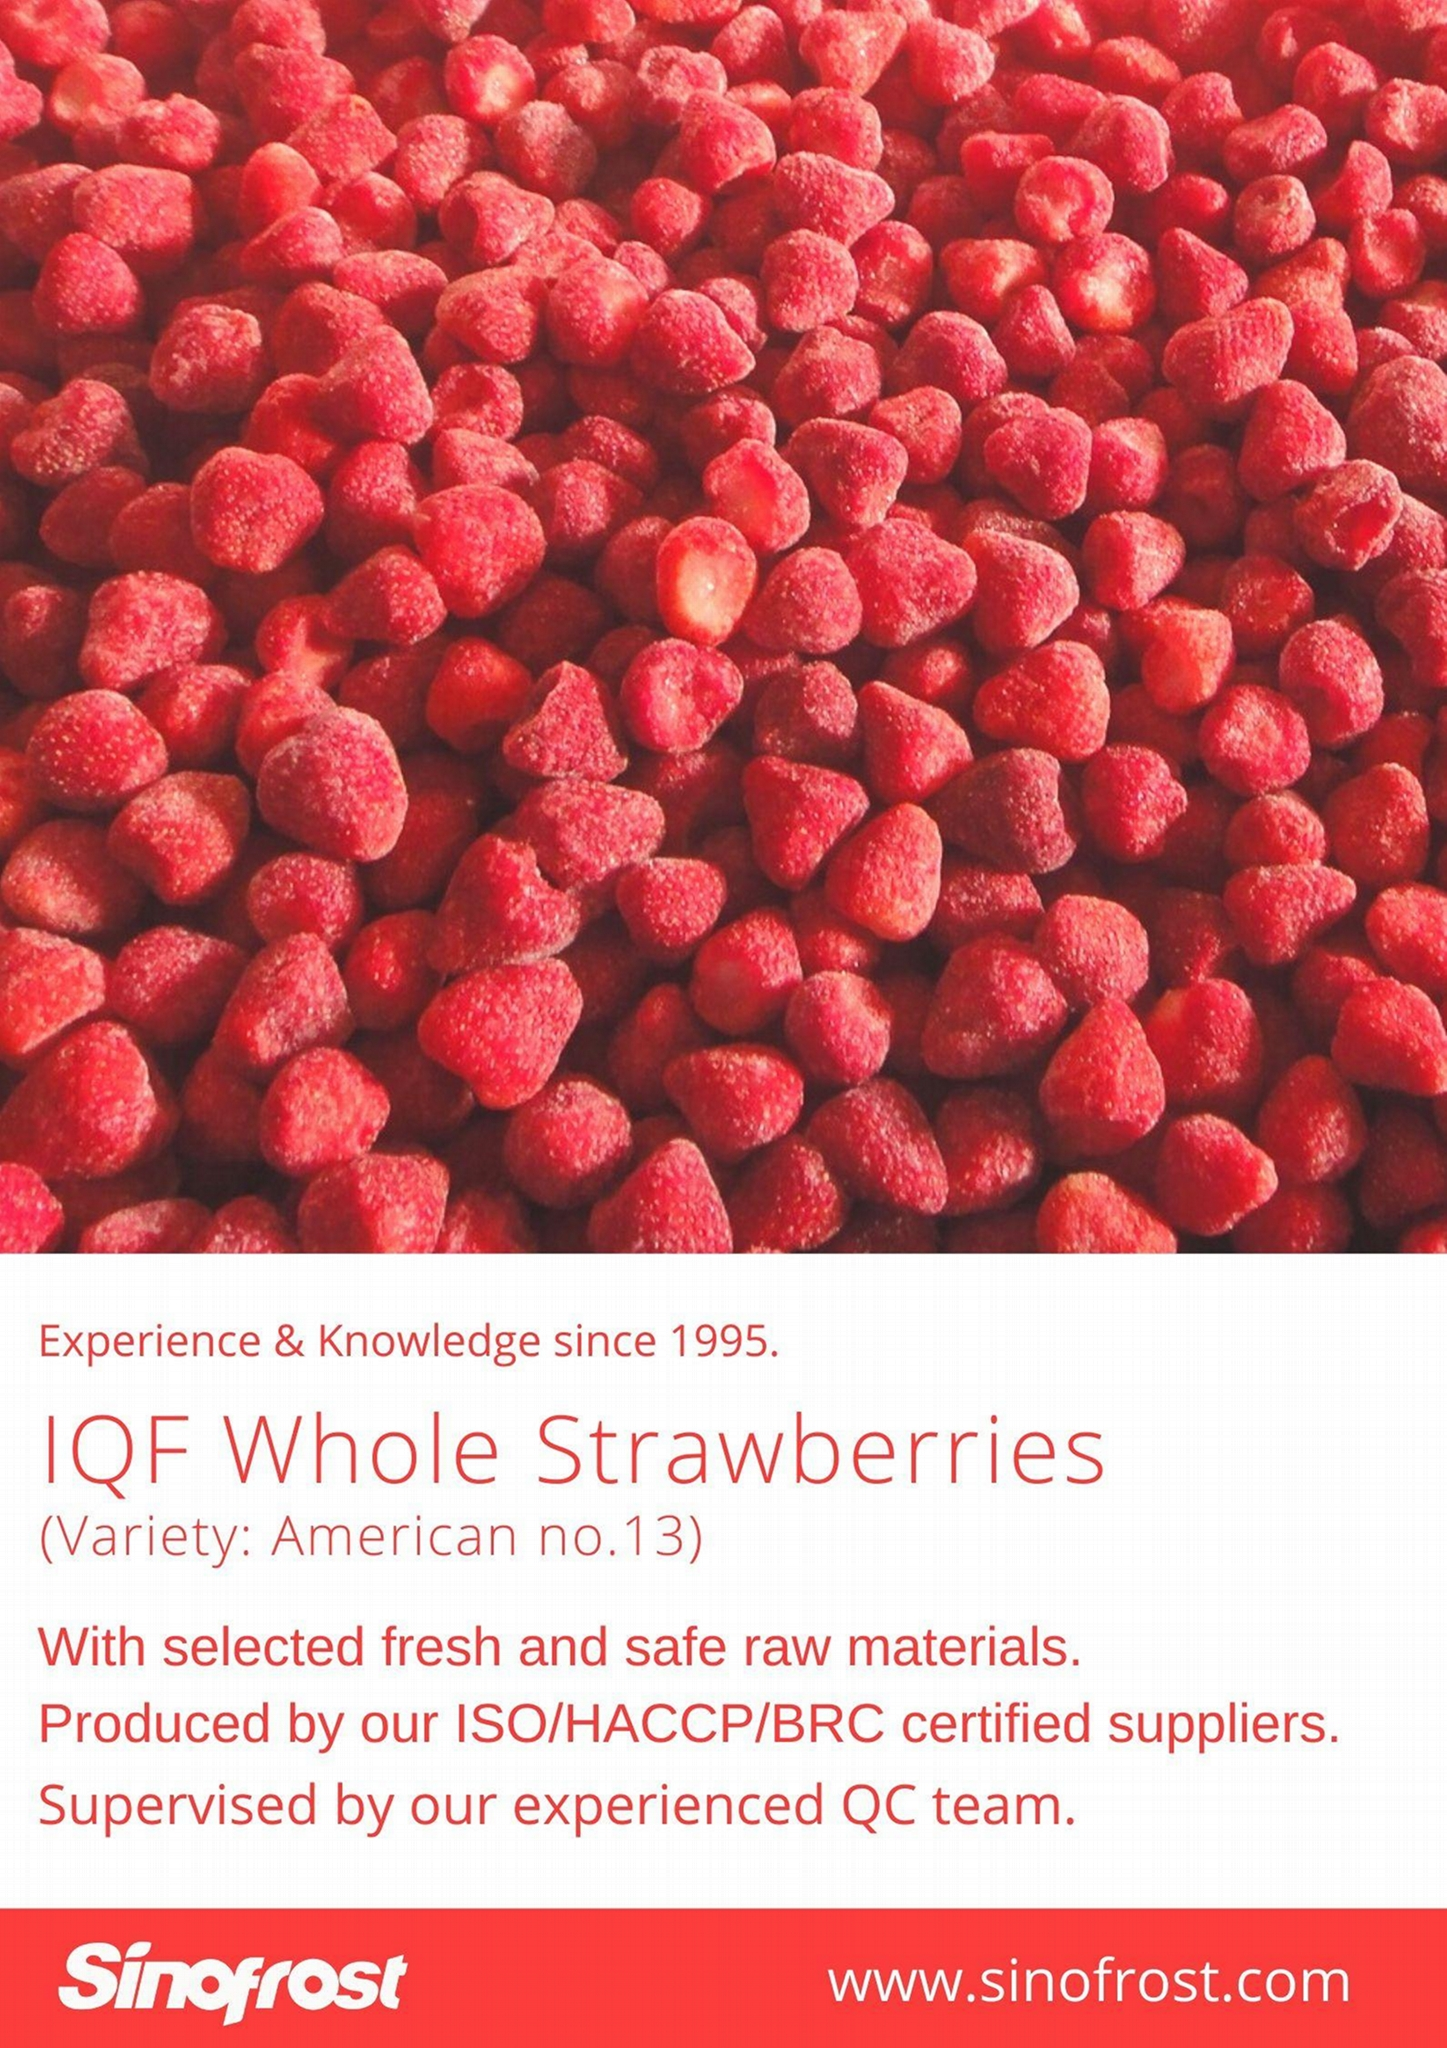 IQF Strawberries,Frozen Whole Strawberries,IQF Strawberry,American no.13 variety 18